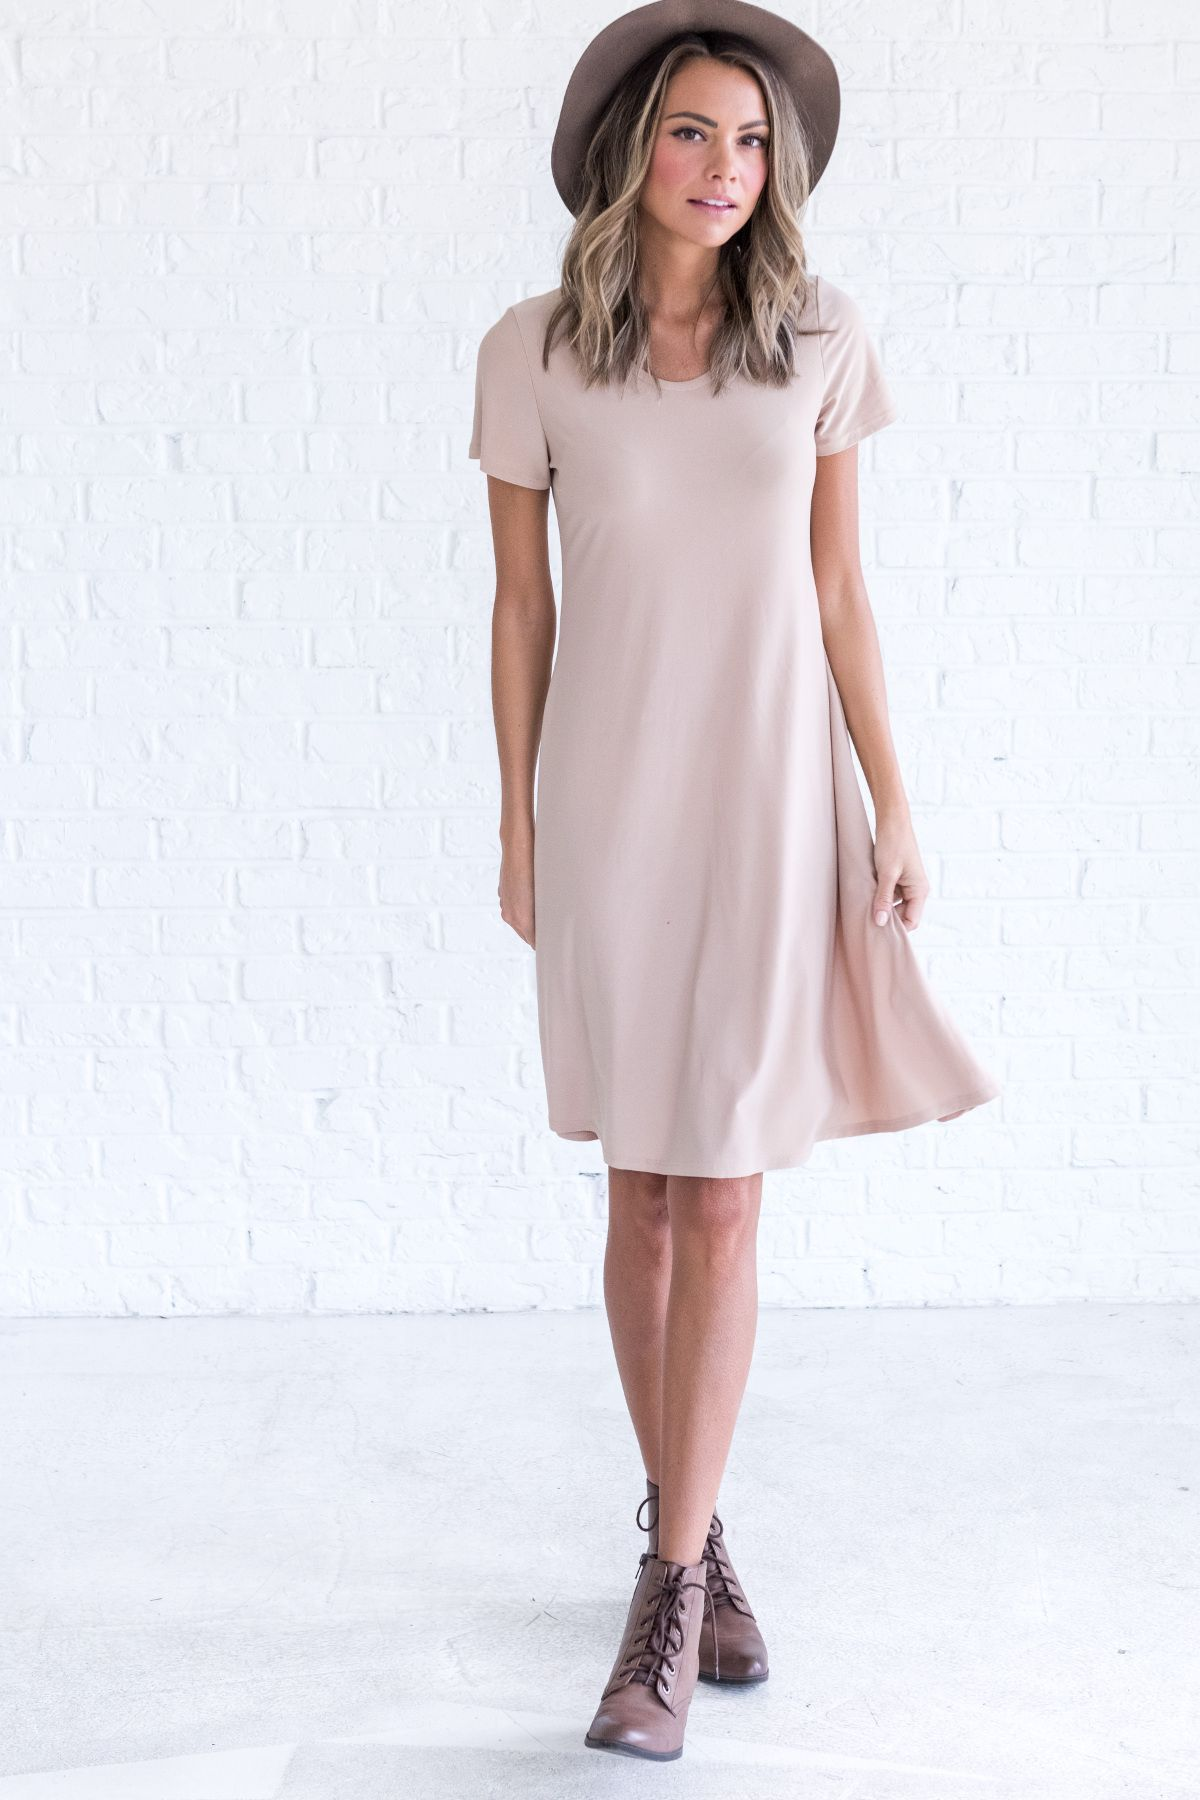 Tan dress, cute dresses for winter, casual dress outfit